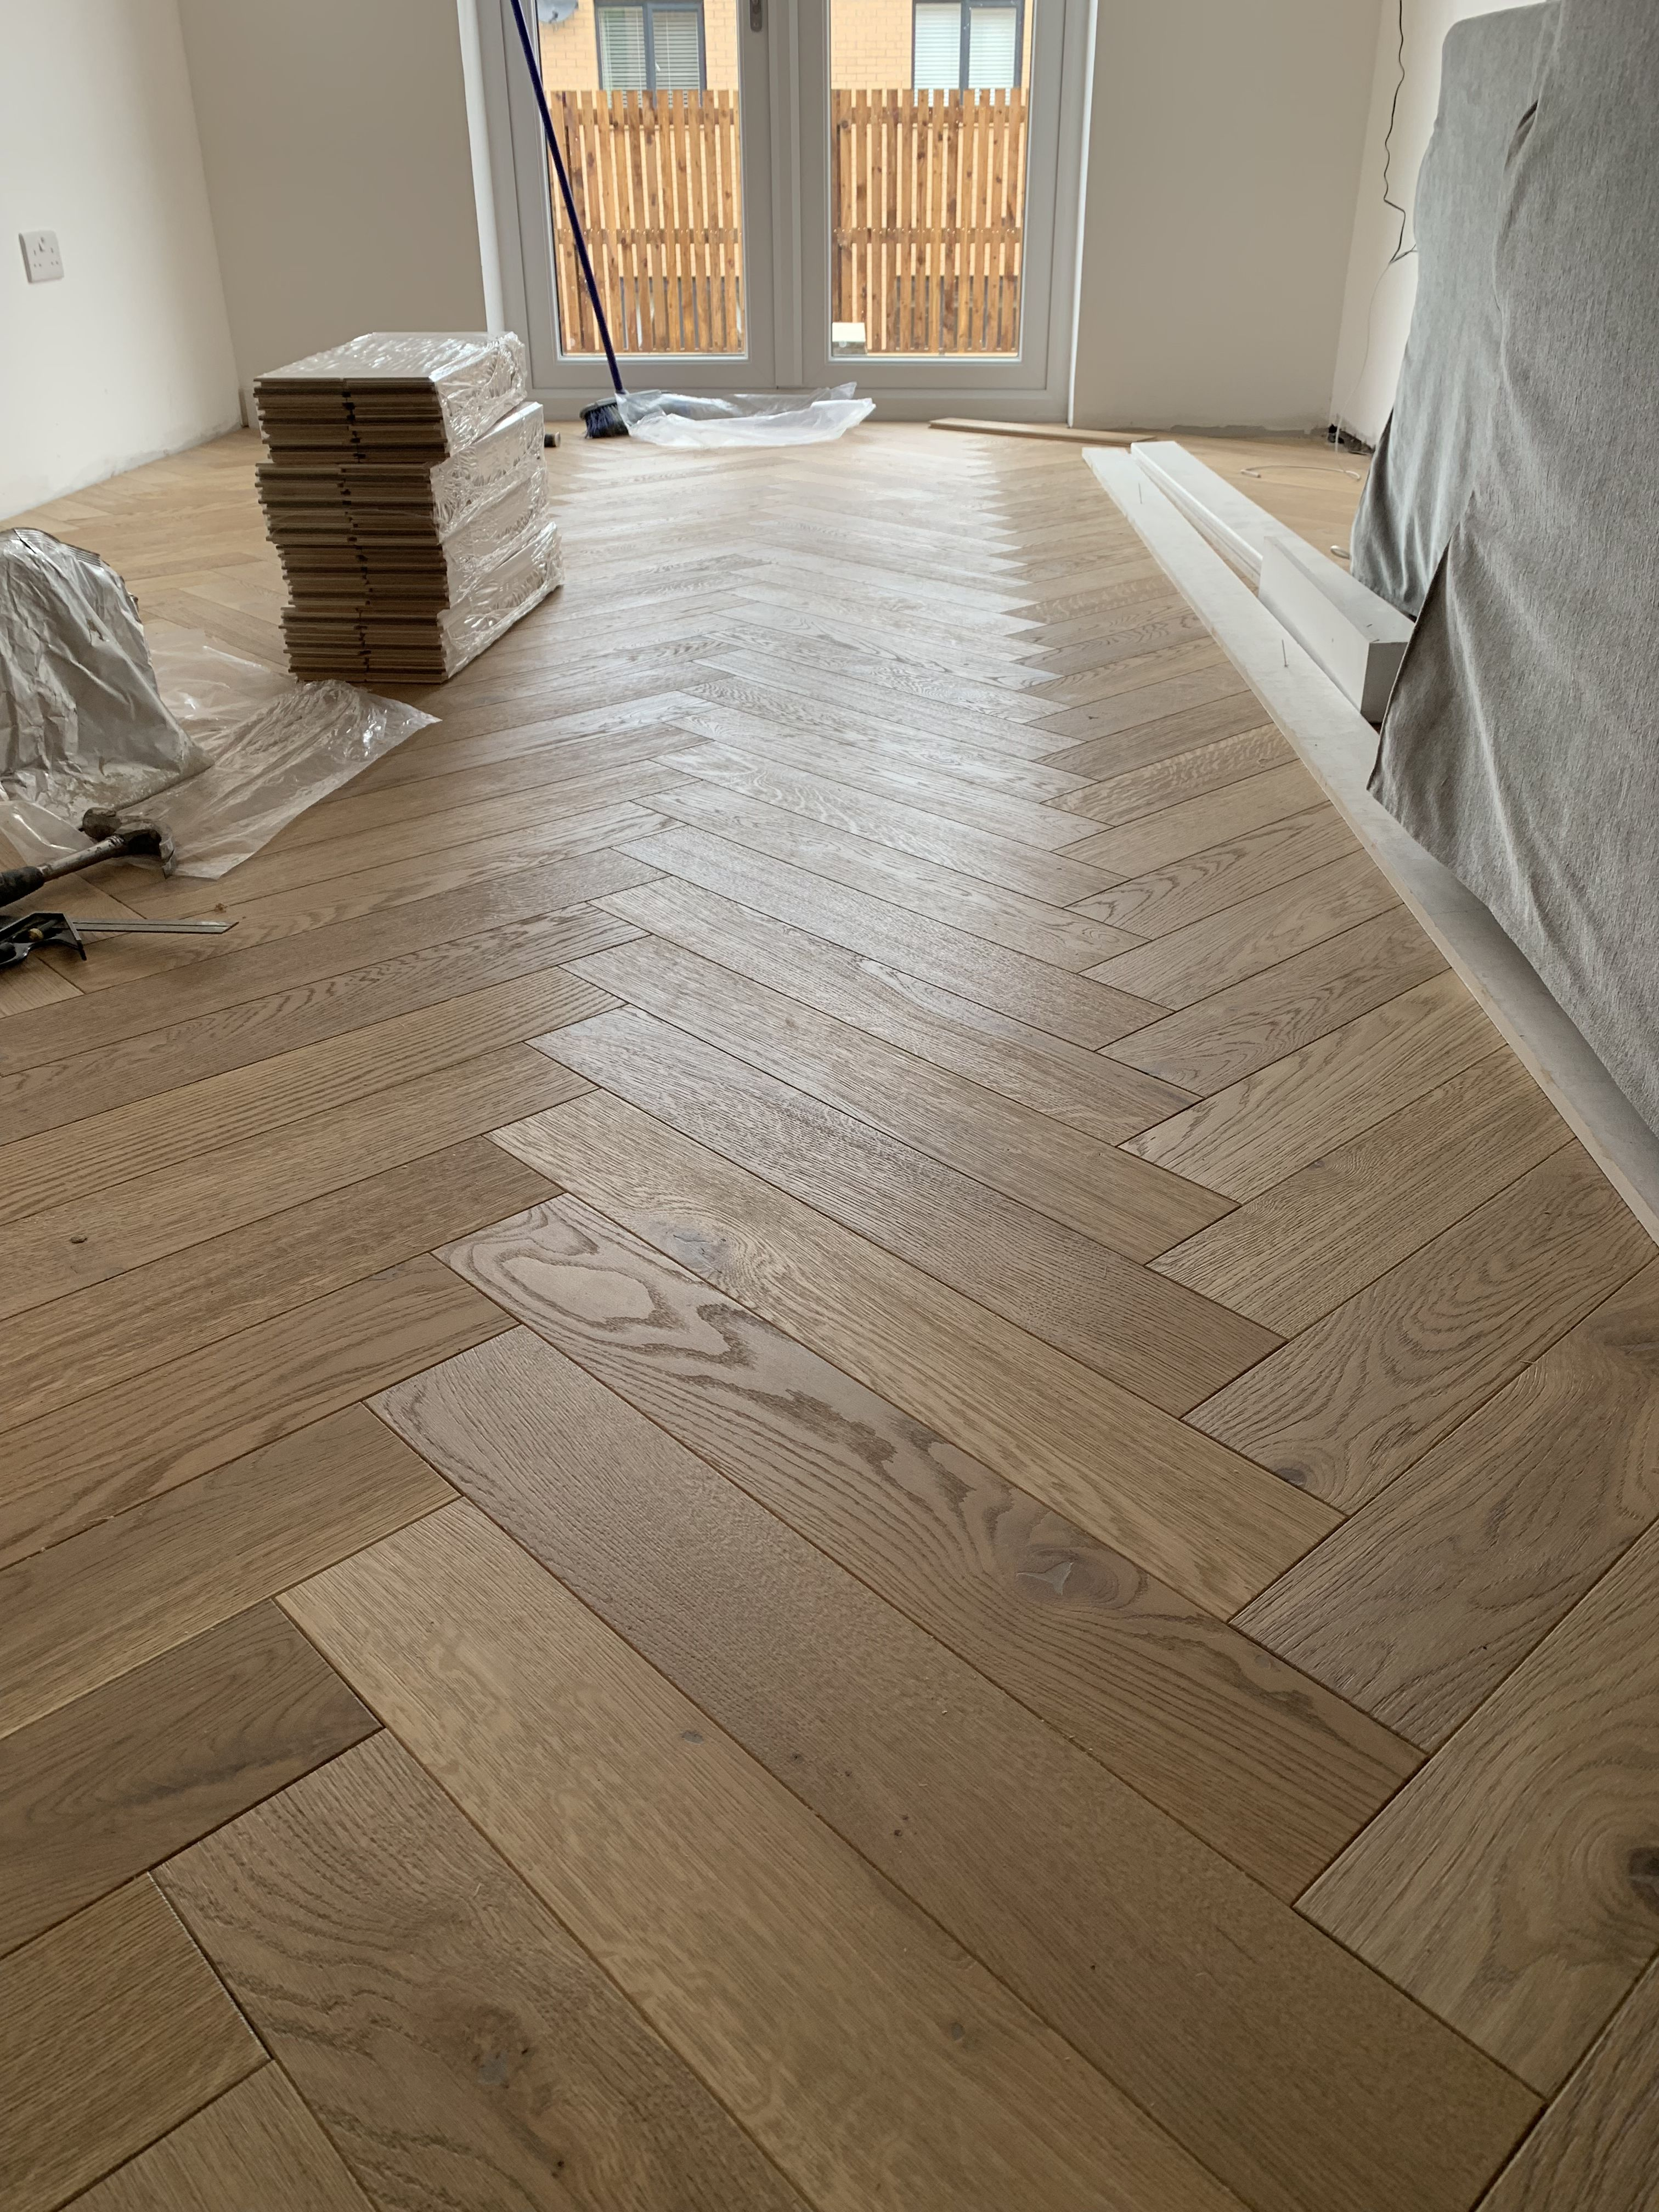 Dark Oak Engineered Parquet Flooring In 2020 Flooring Engineered Parquet Parquet Flooring